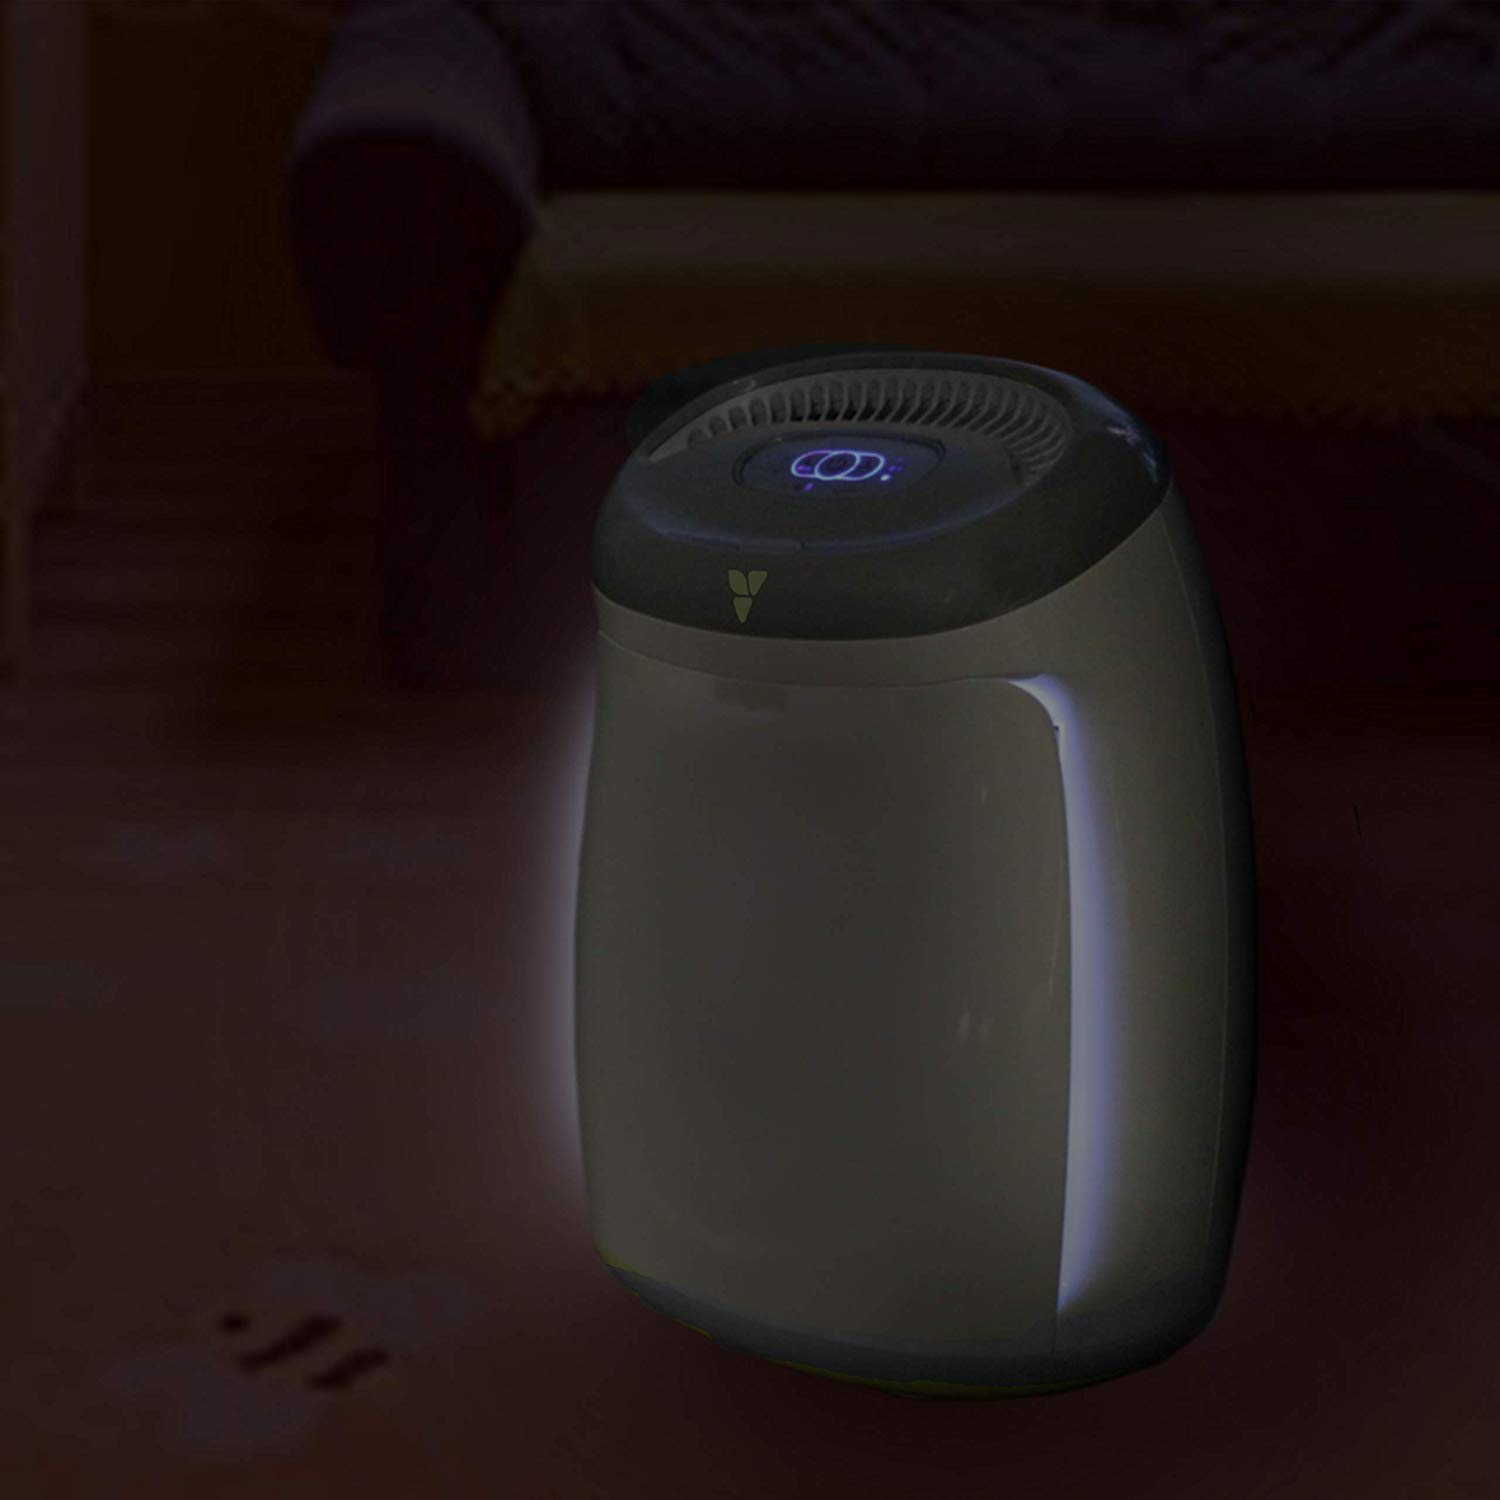 Best Air Purifier for Baby - #1 Vornadobaby Purio Air Purifier - Sleepy time nightlight